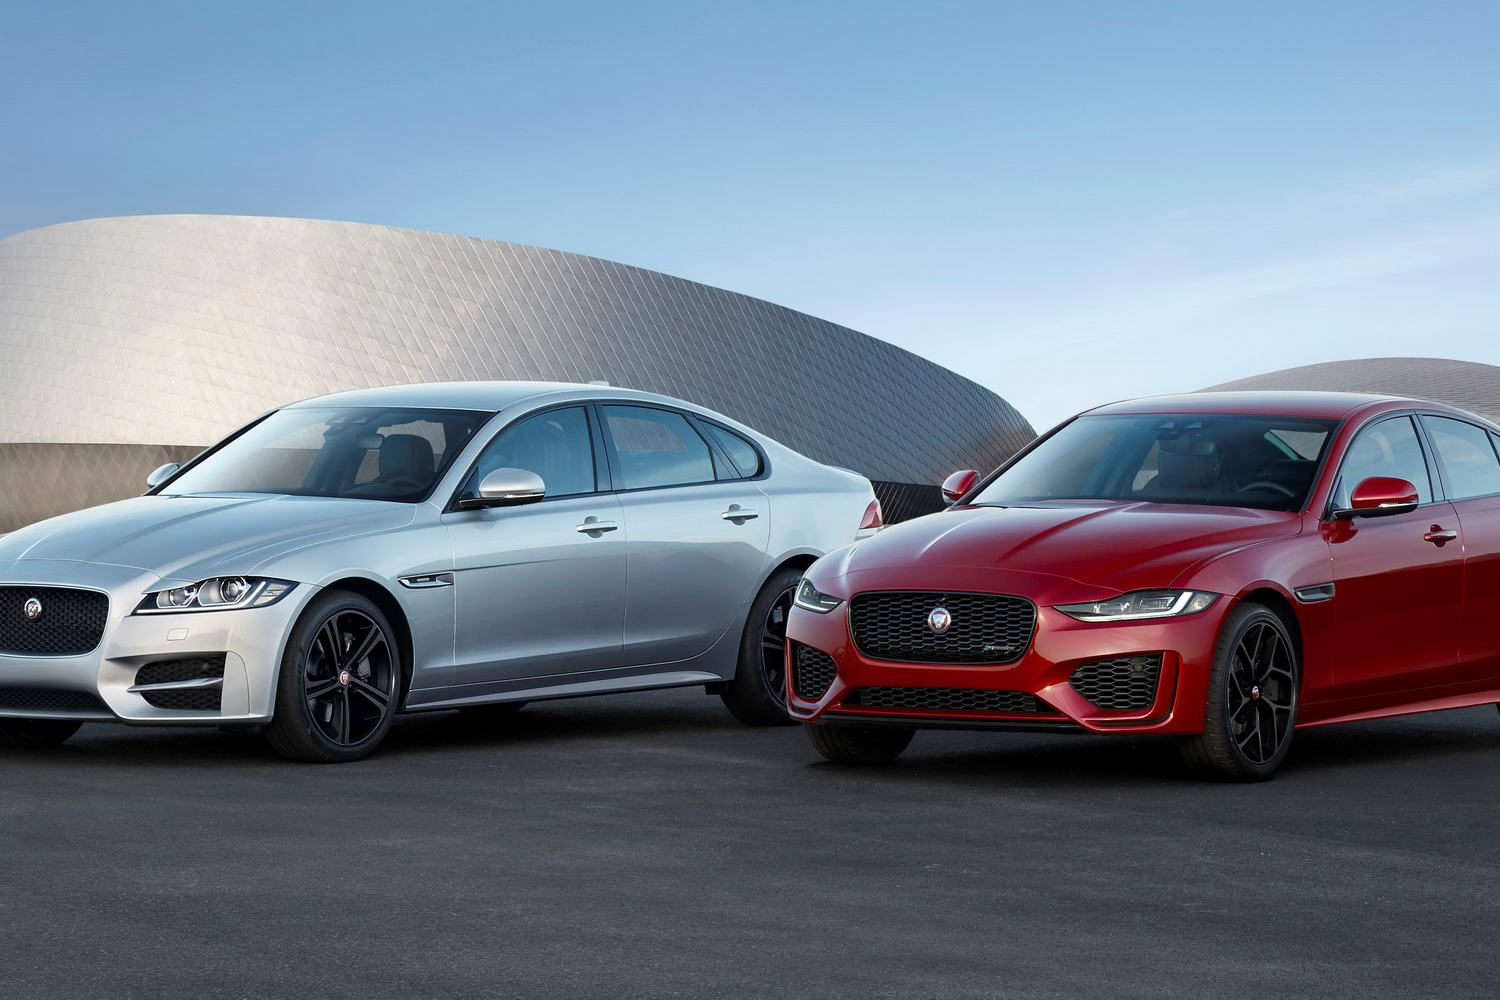 Car News | Jaguar Ireland invites you back to the open road | CompleteCar.ie